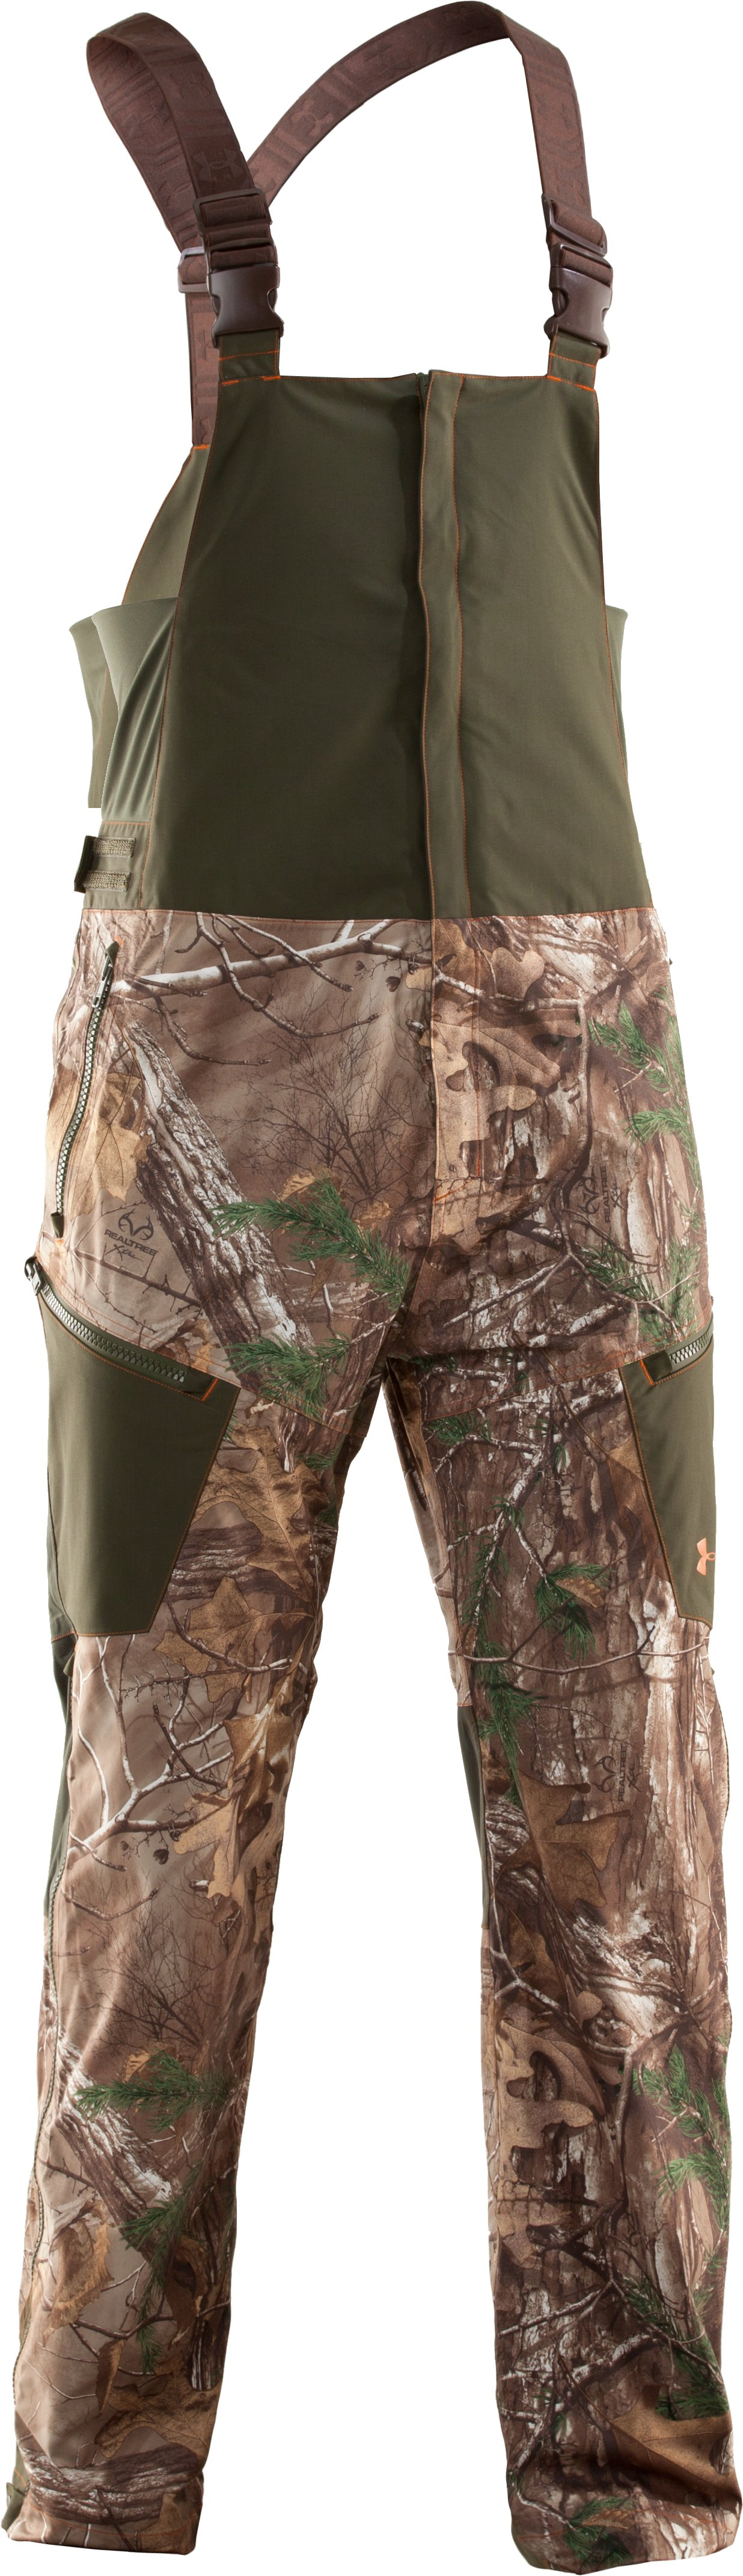 Men's Ridge Reaper® Shell Camo Hunting Bib, REALTREE AP-XTRA,